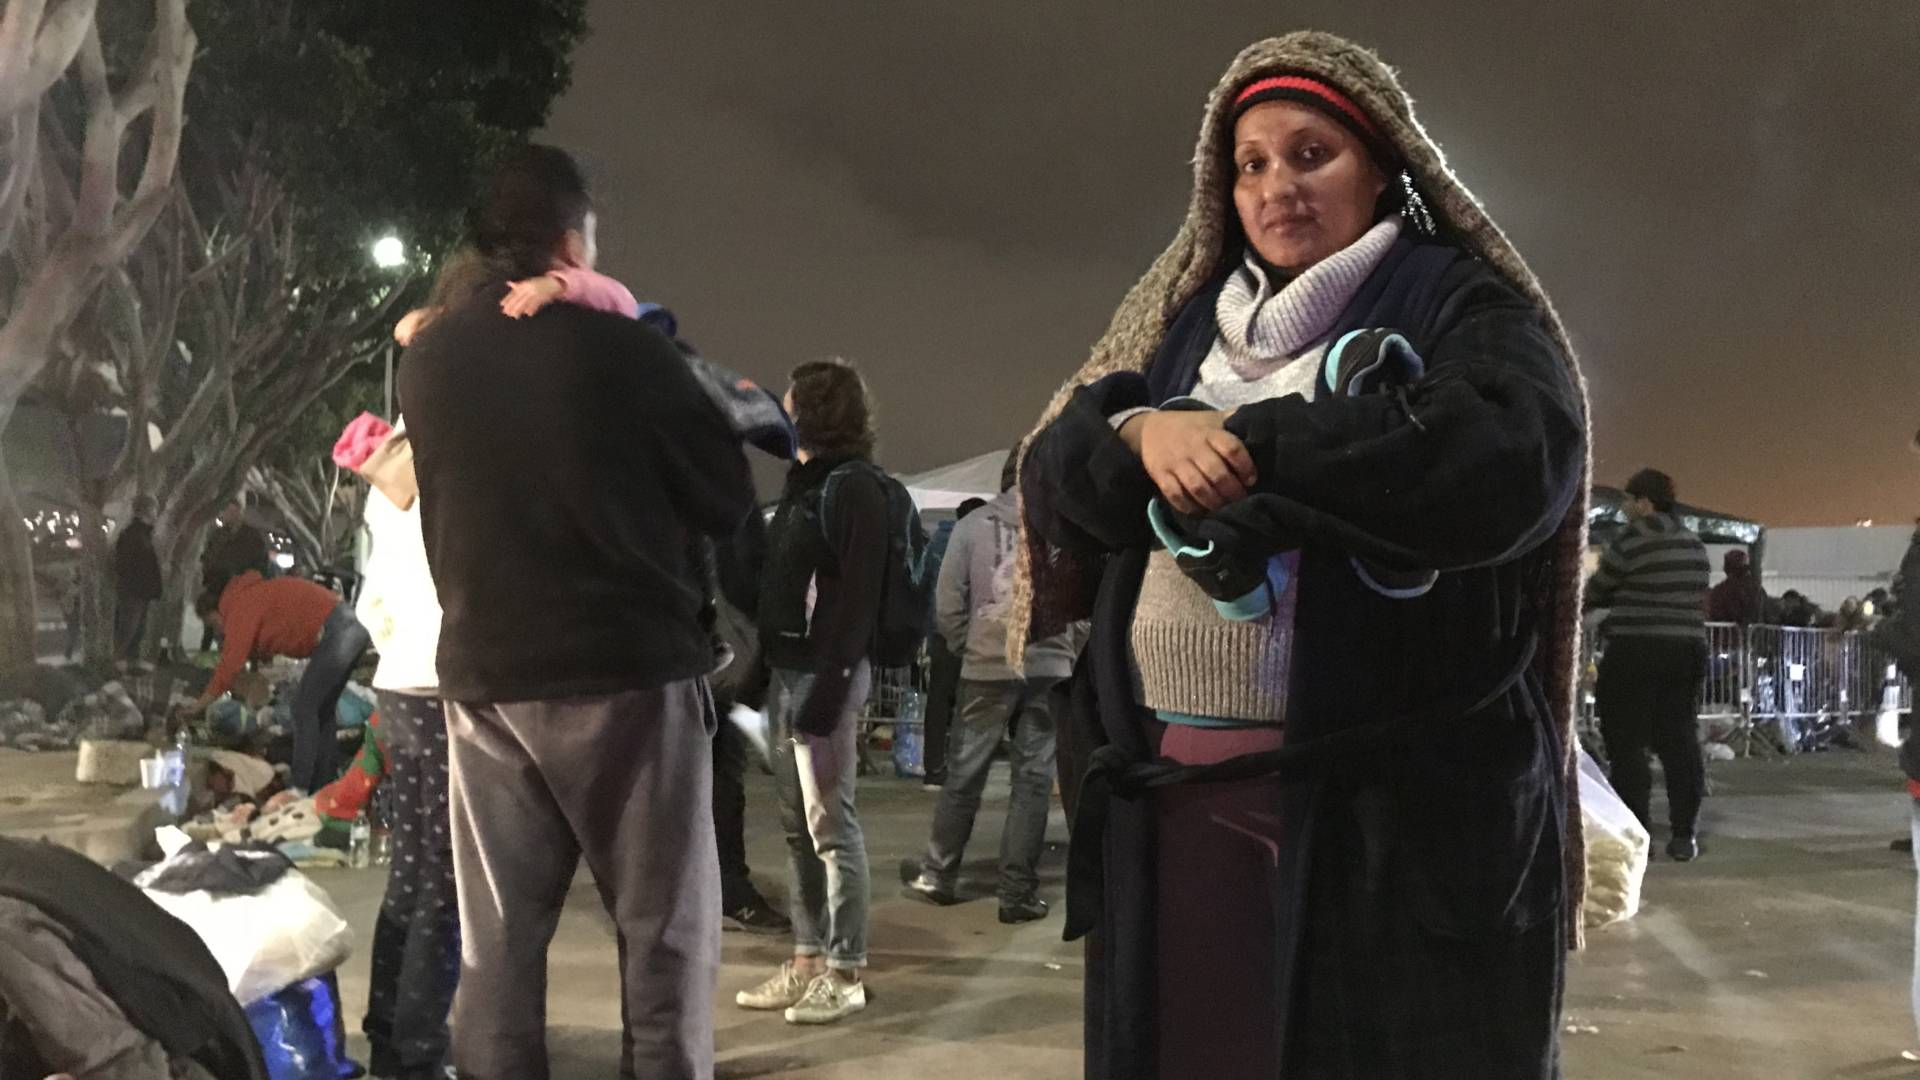 Deana Quczada of Honduras has been camping with her young children on the street in Tijuana for several days. Going back to the violence in her home country is not an option, she says. Kirk Siegler/NPR